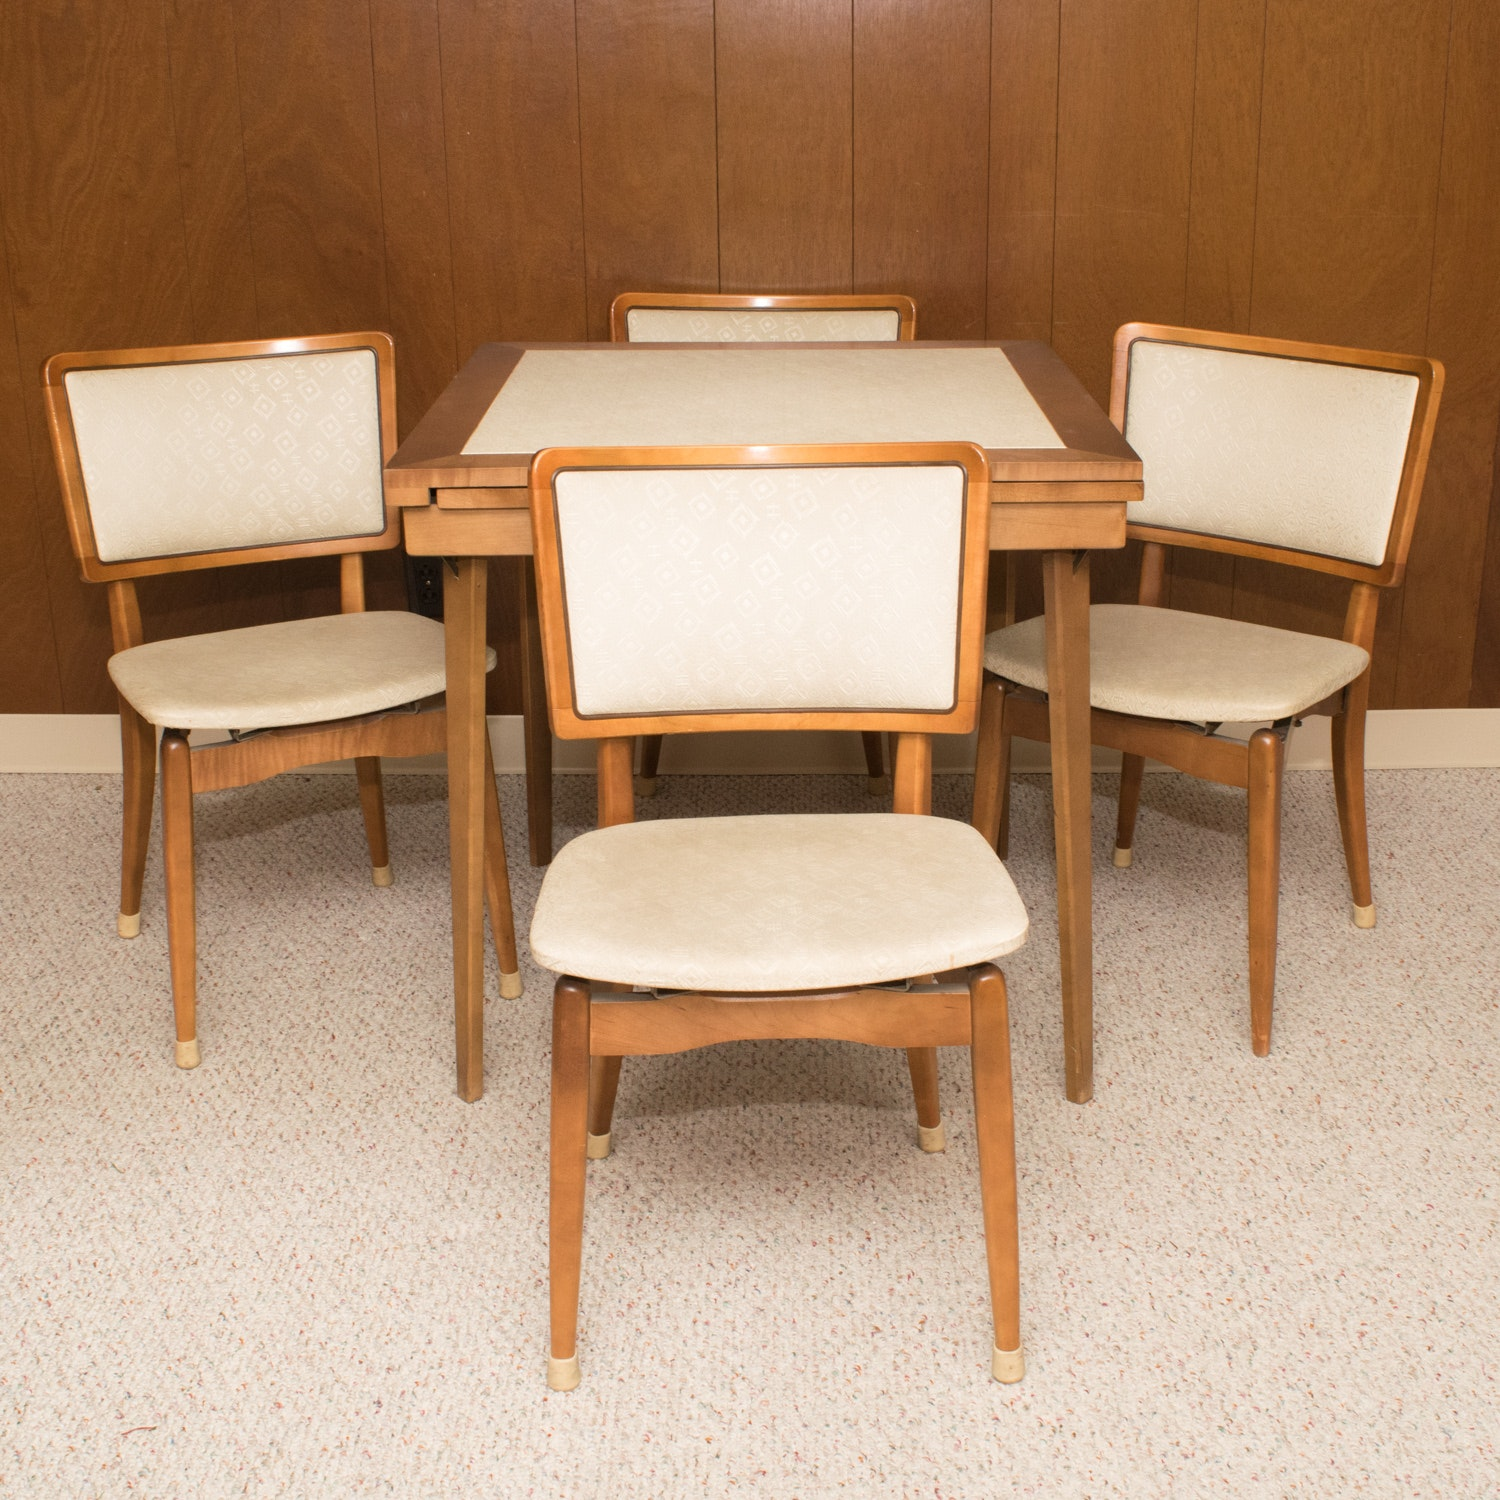 vintage cosco quot fashionfold quot chairs and folding card table